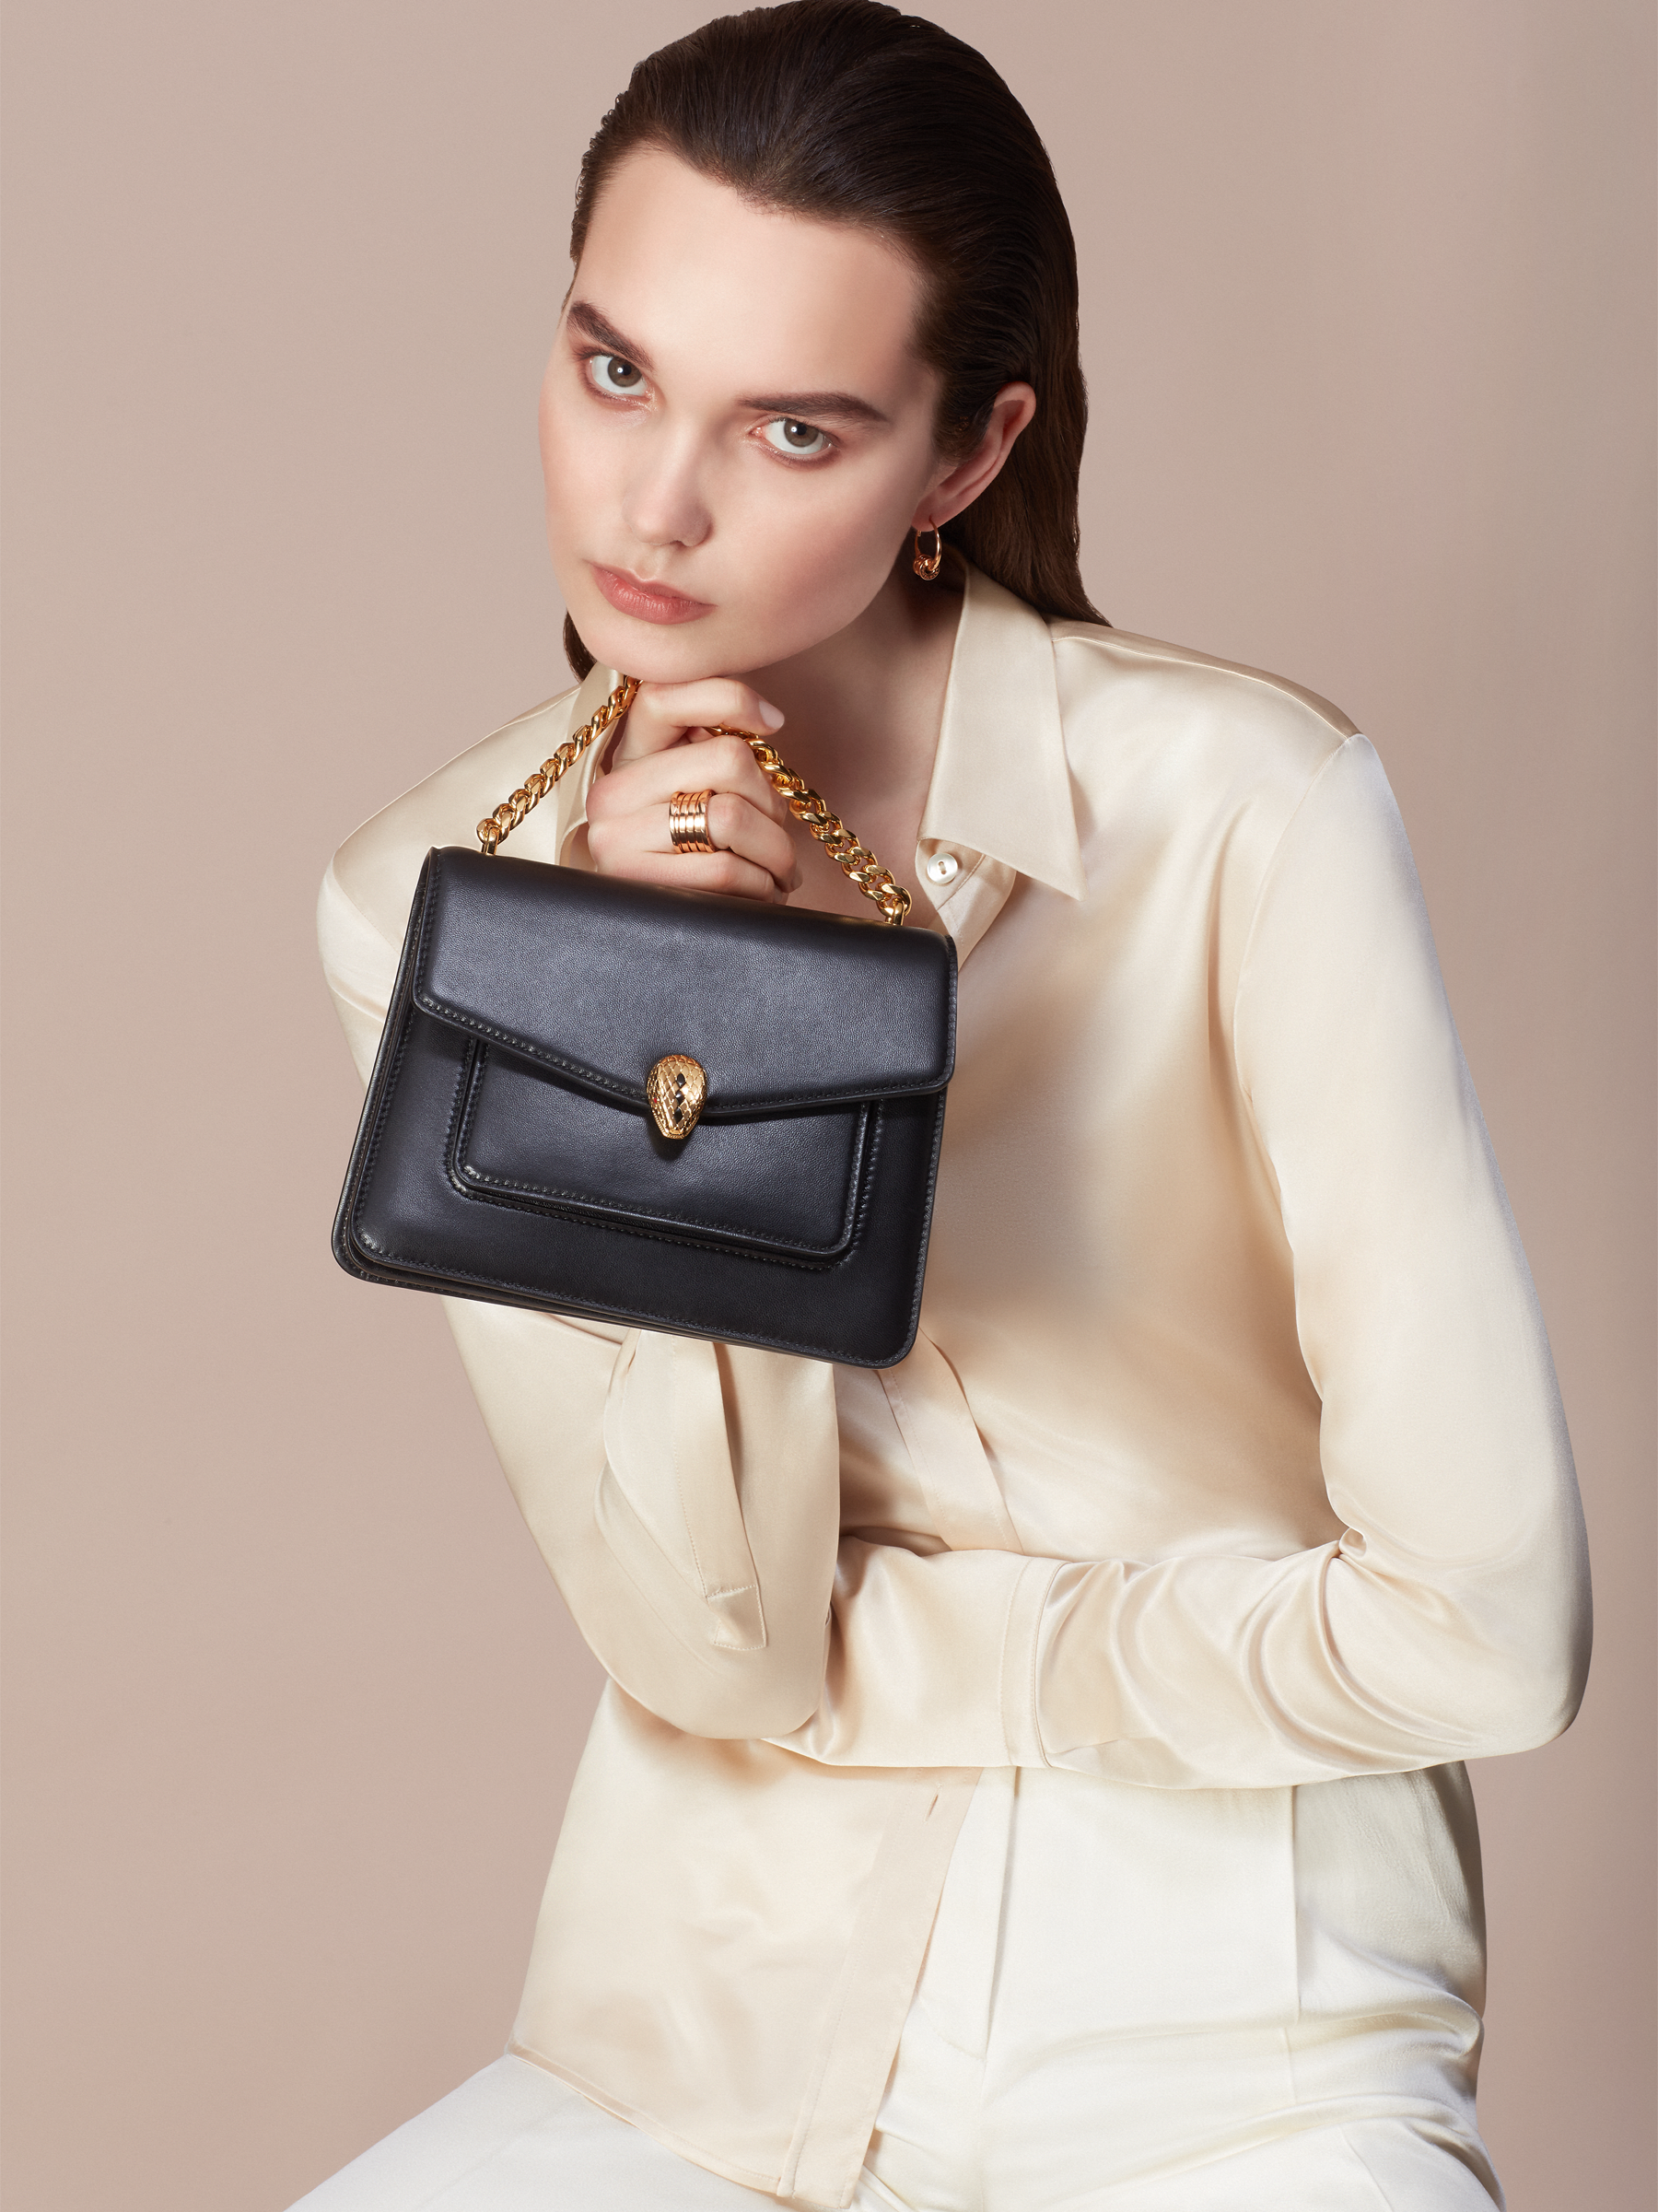 """""""Serpenti Forever"""" small maxi chain crossbody bag in black nappa leather, with black nappa leather inner lining. New Serpenti head closure in gold-plated brass, finished with small black onyx scales in the middle, and red enamel eyes. 291050 image 8"""